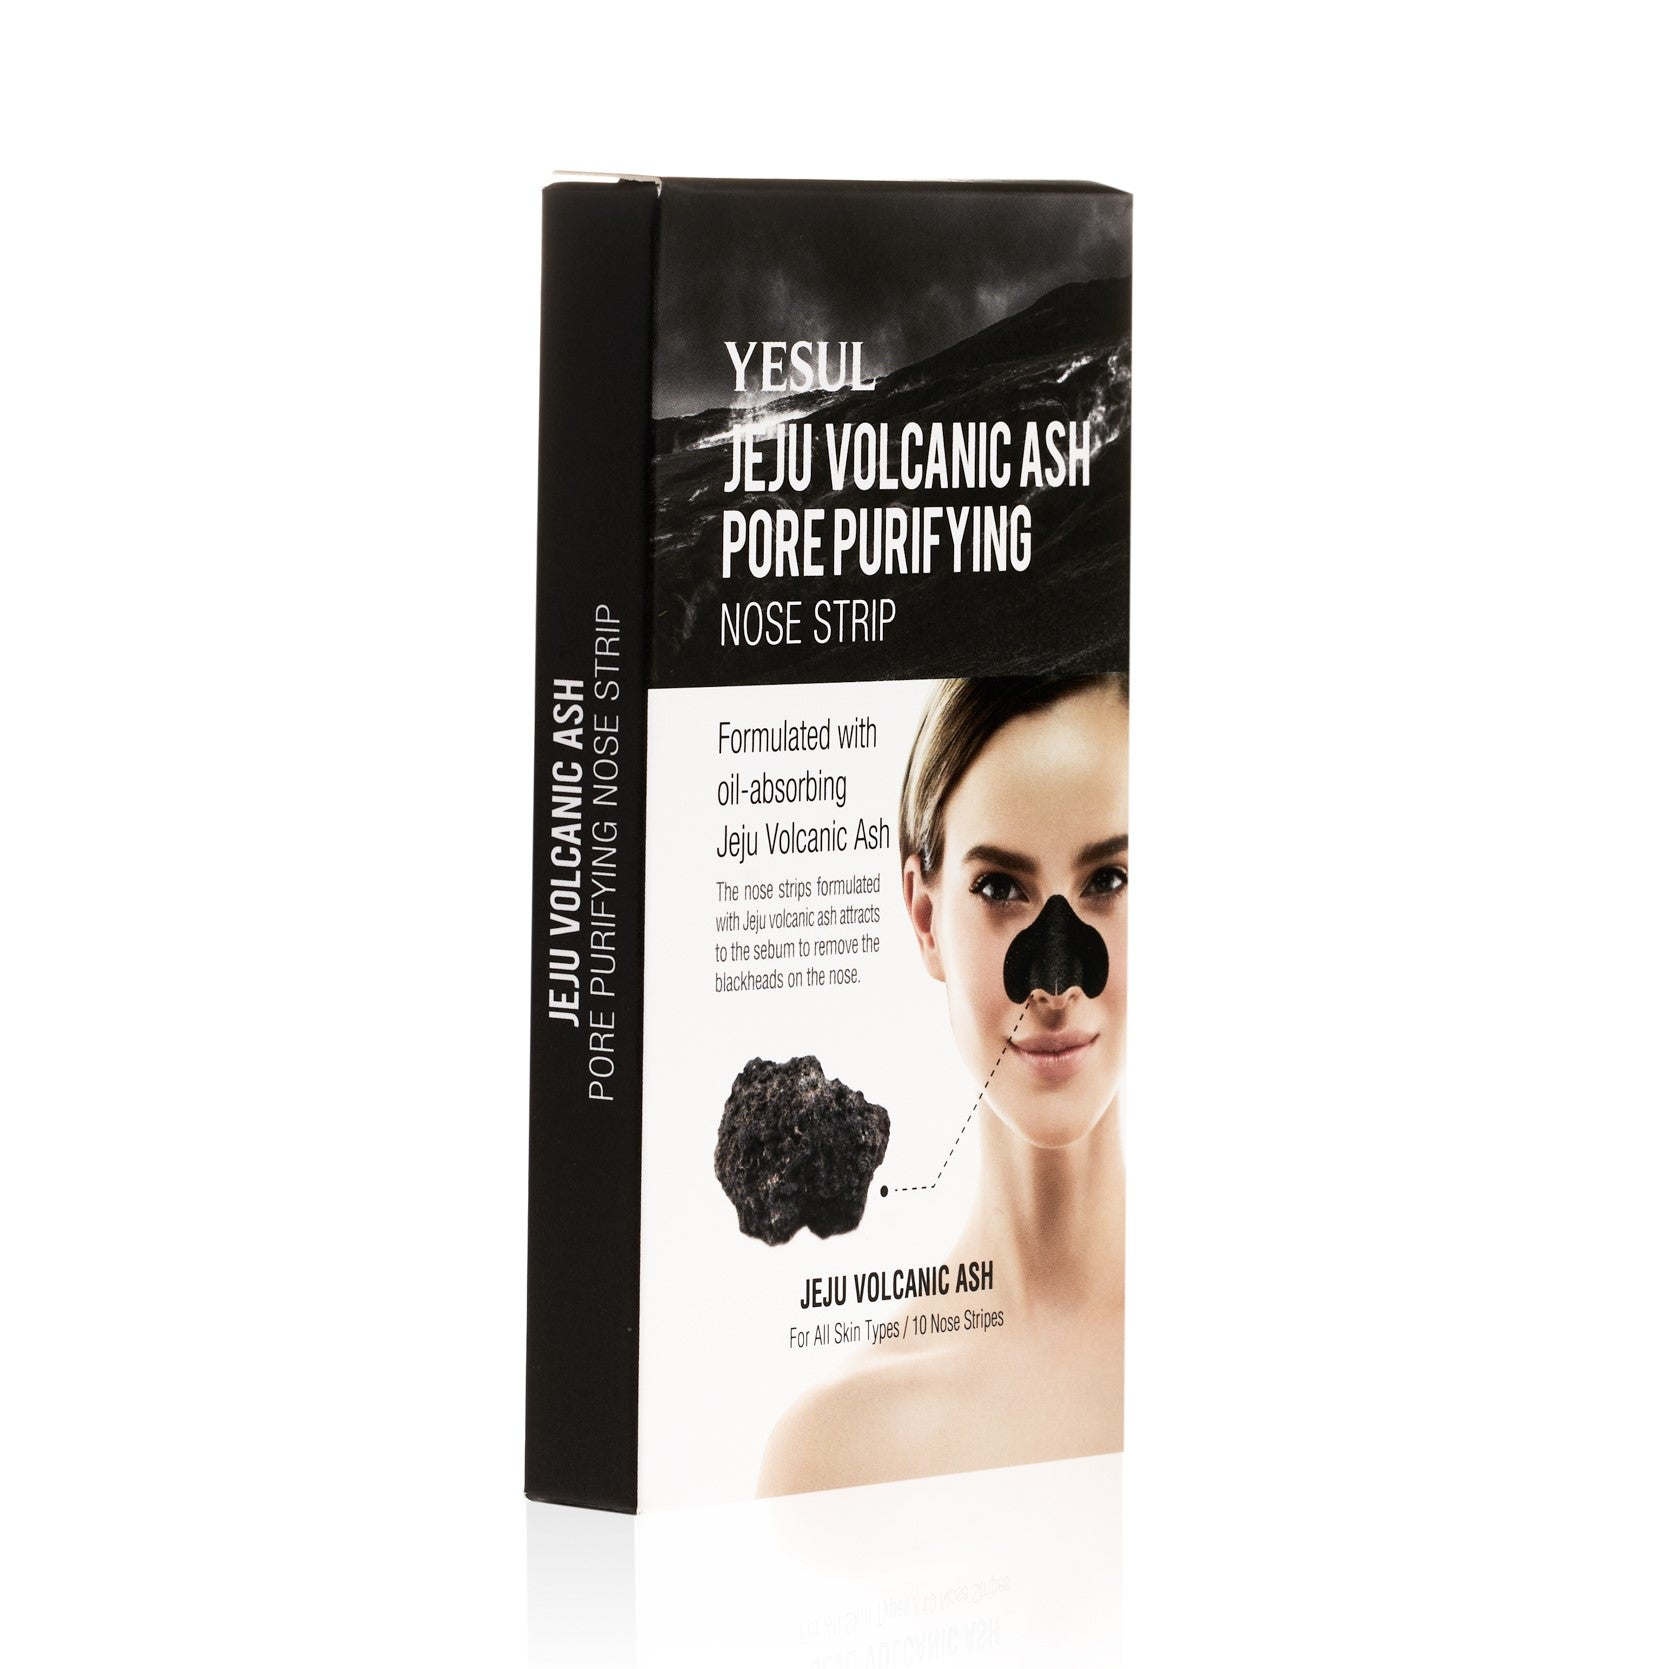 YESUL Jeju Volcanic Ash Pore Purifying Nose Strip